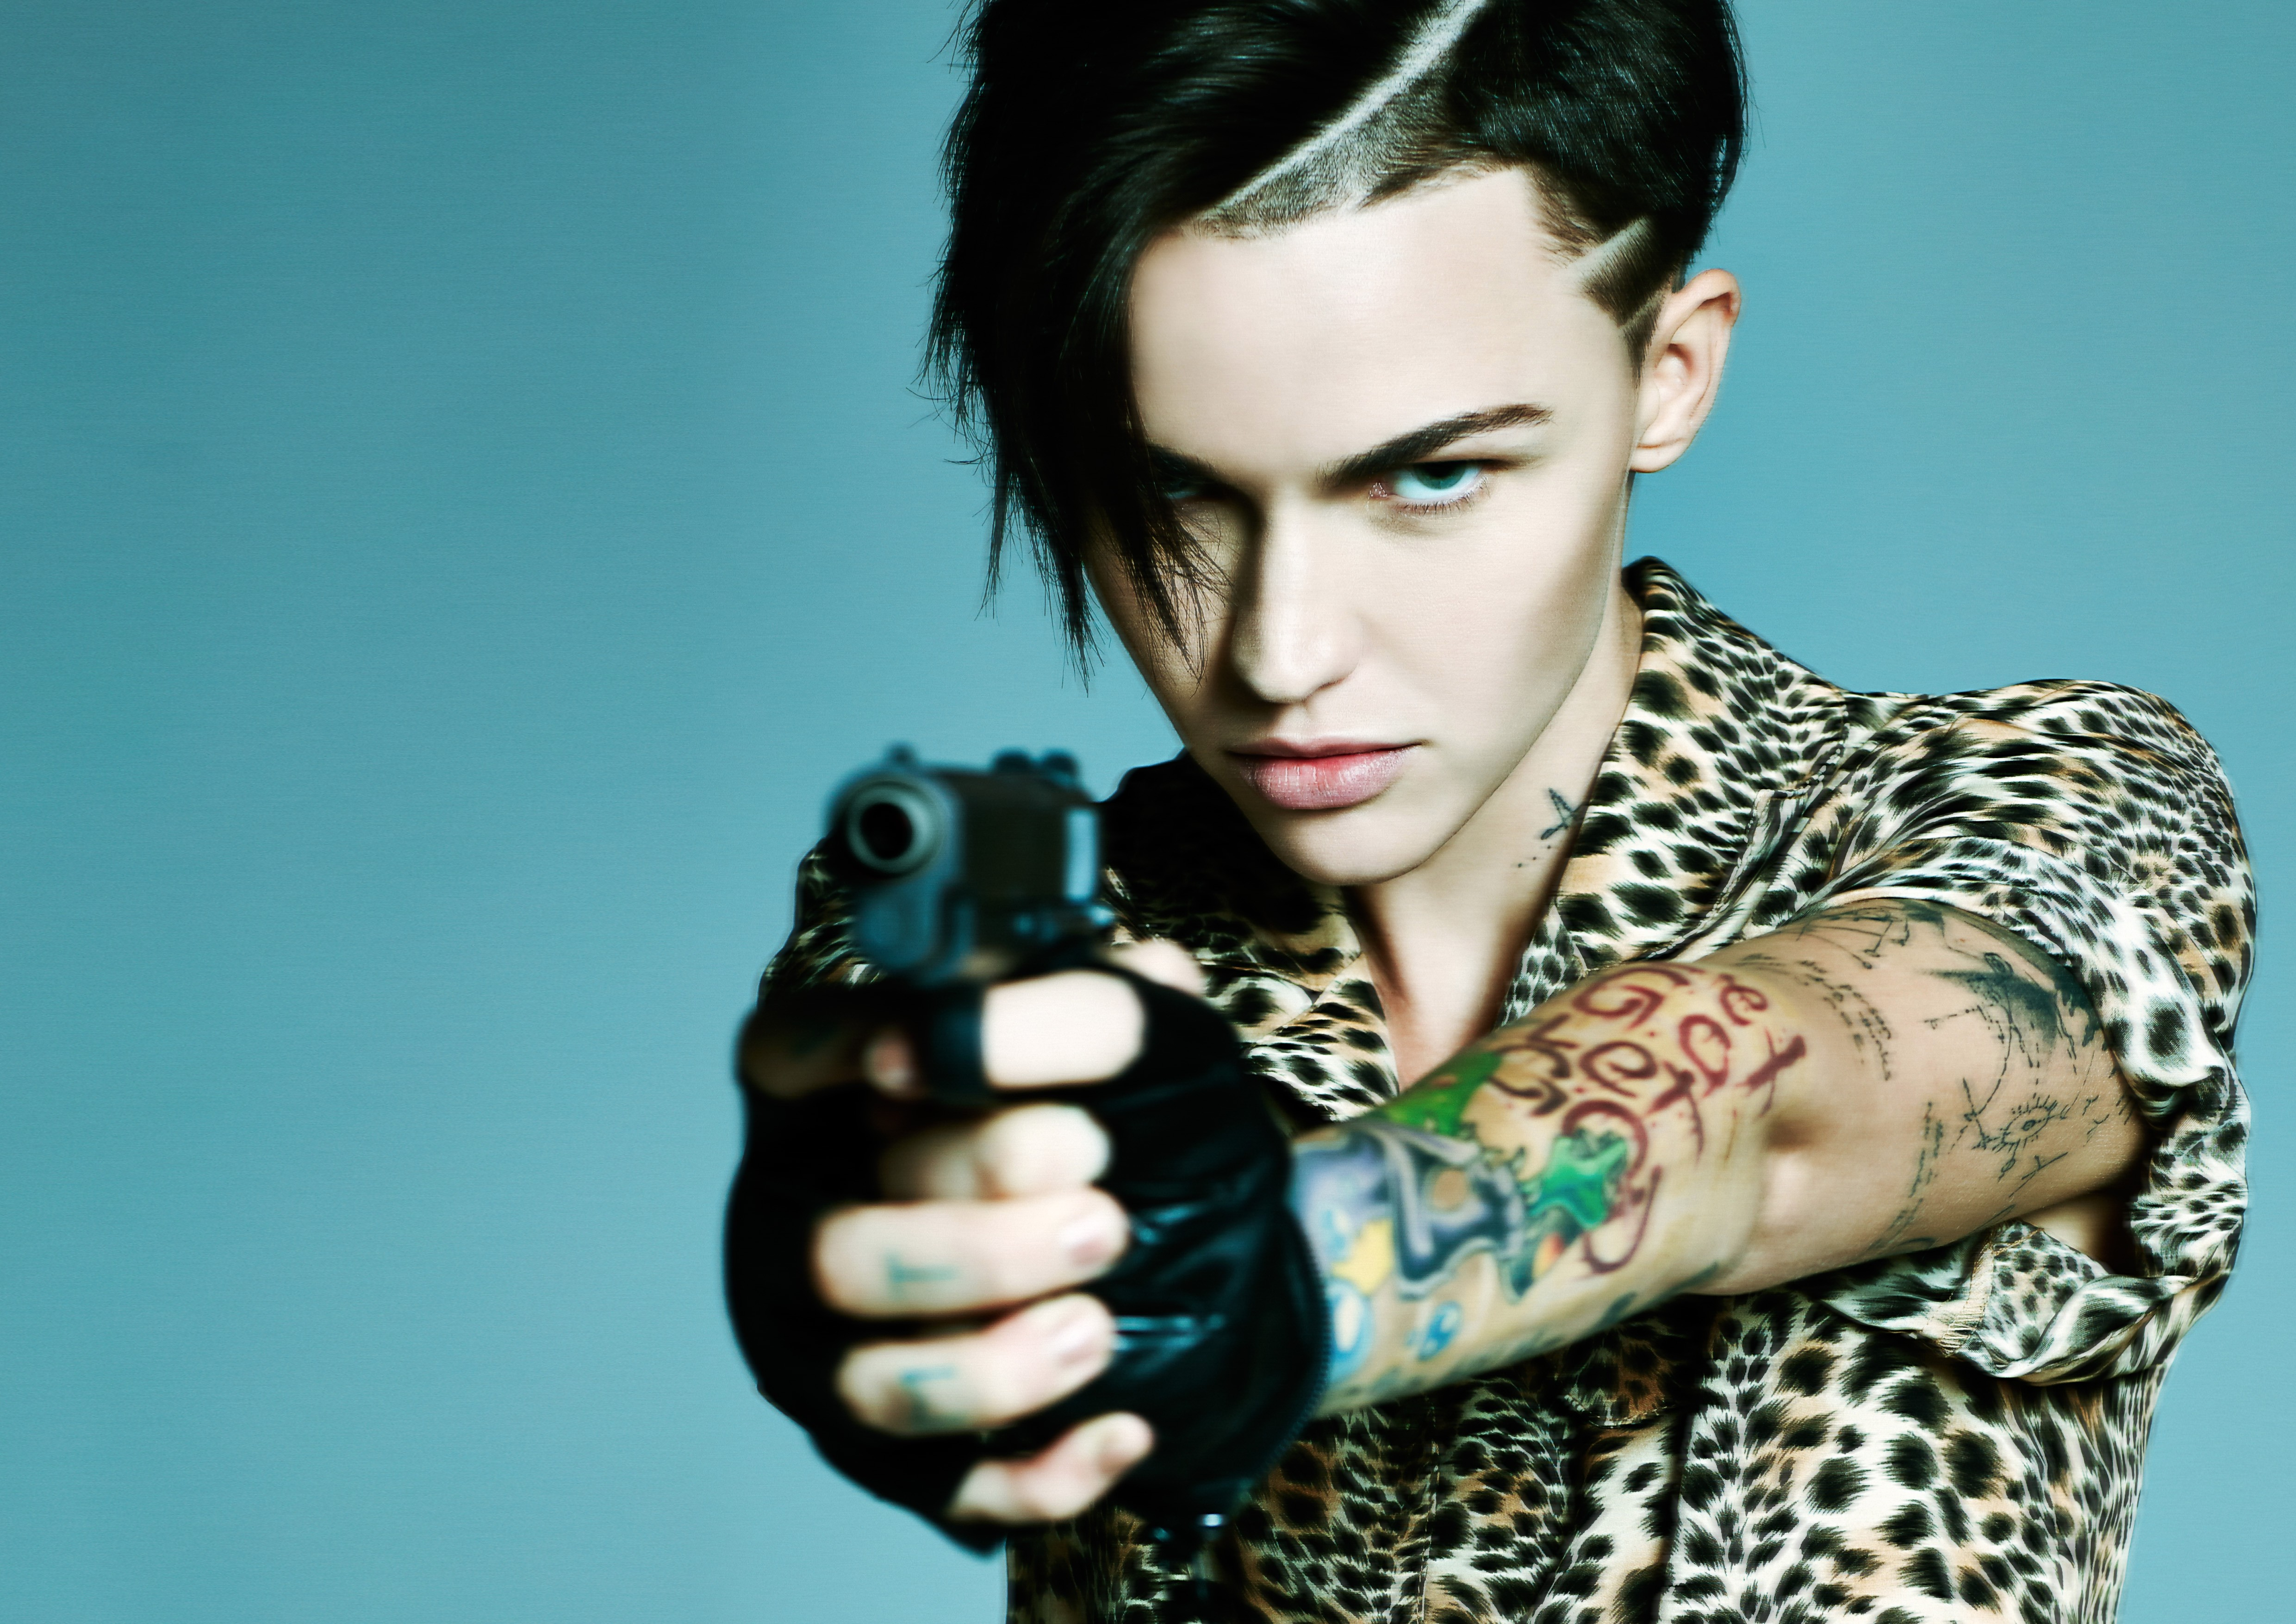 4961x3508 - Ruby Rose Wallpapers 1